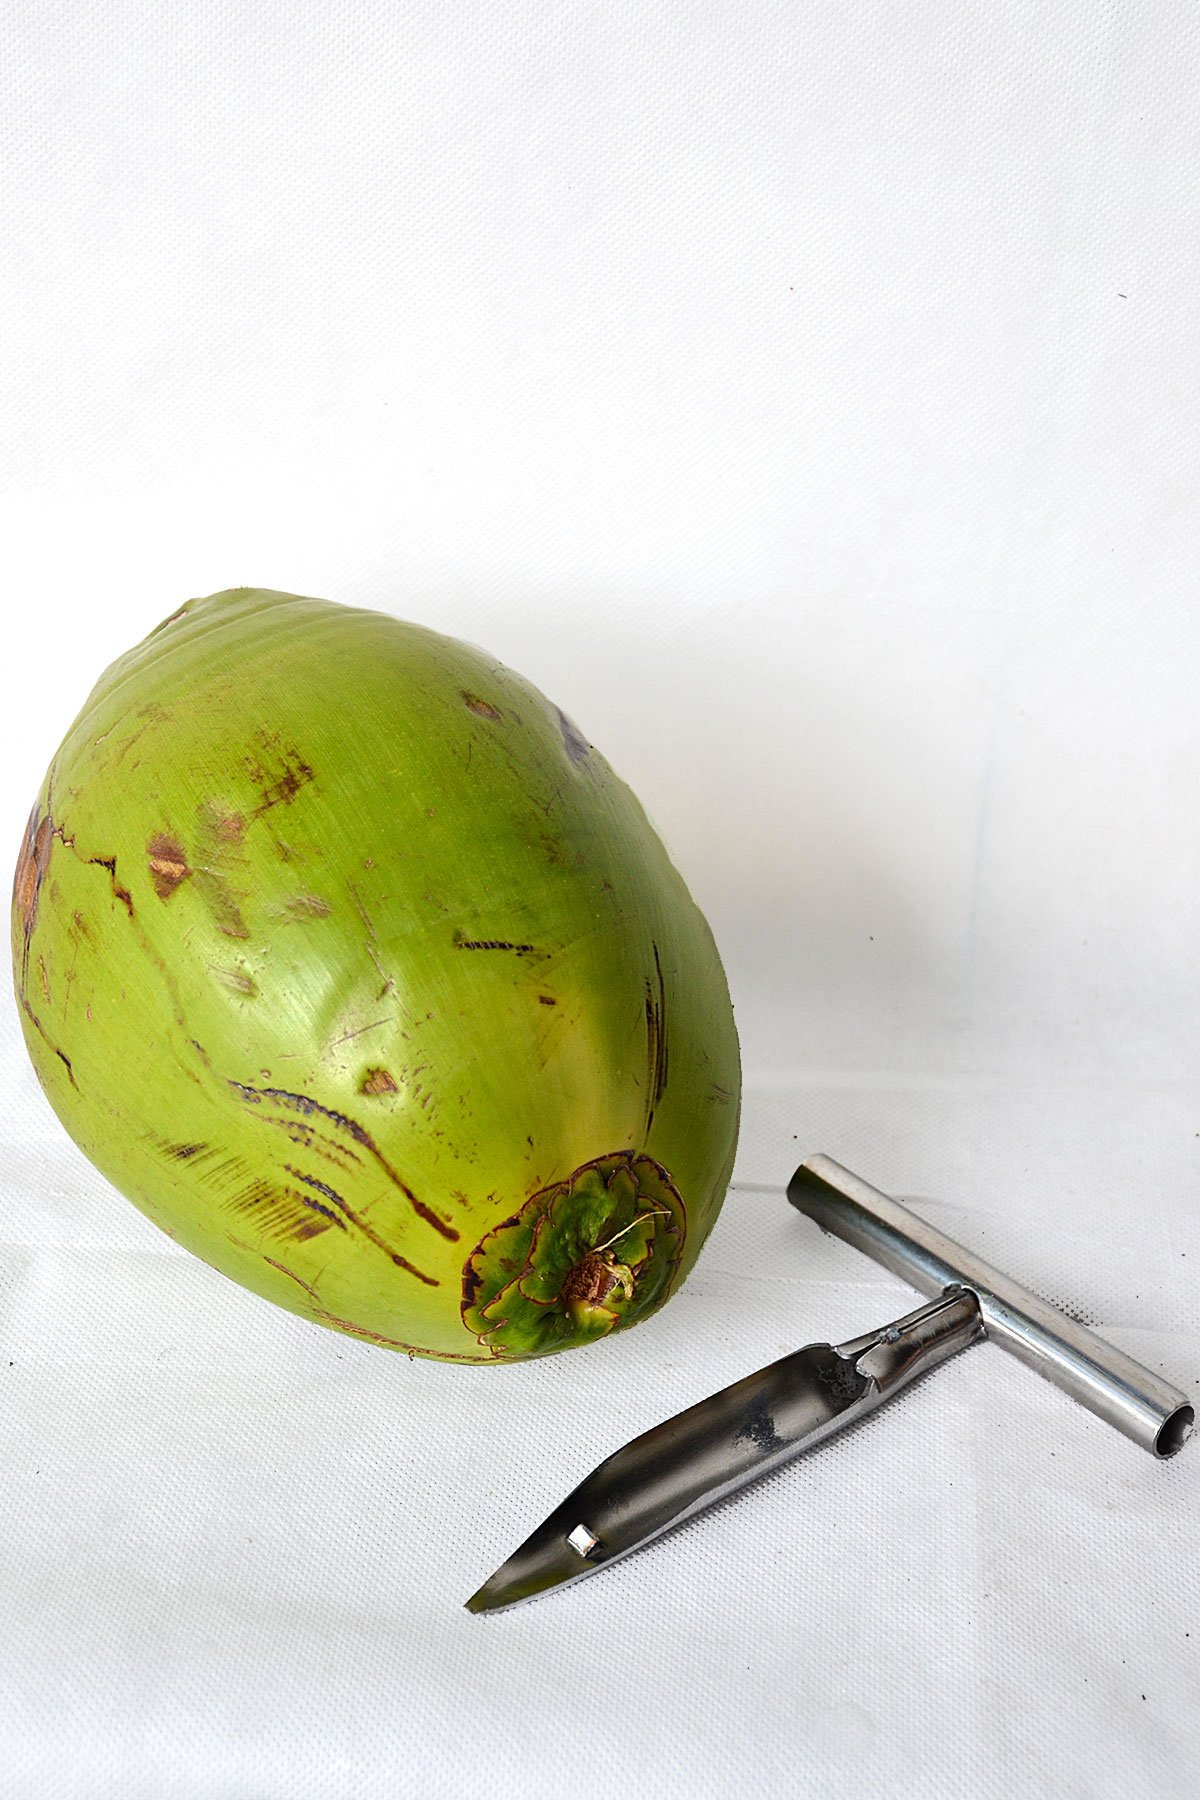 Combo, 3 Fresh Green Coconuts and Metal Cutter Opener Tool, for Drinking (No Ship to CA)